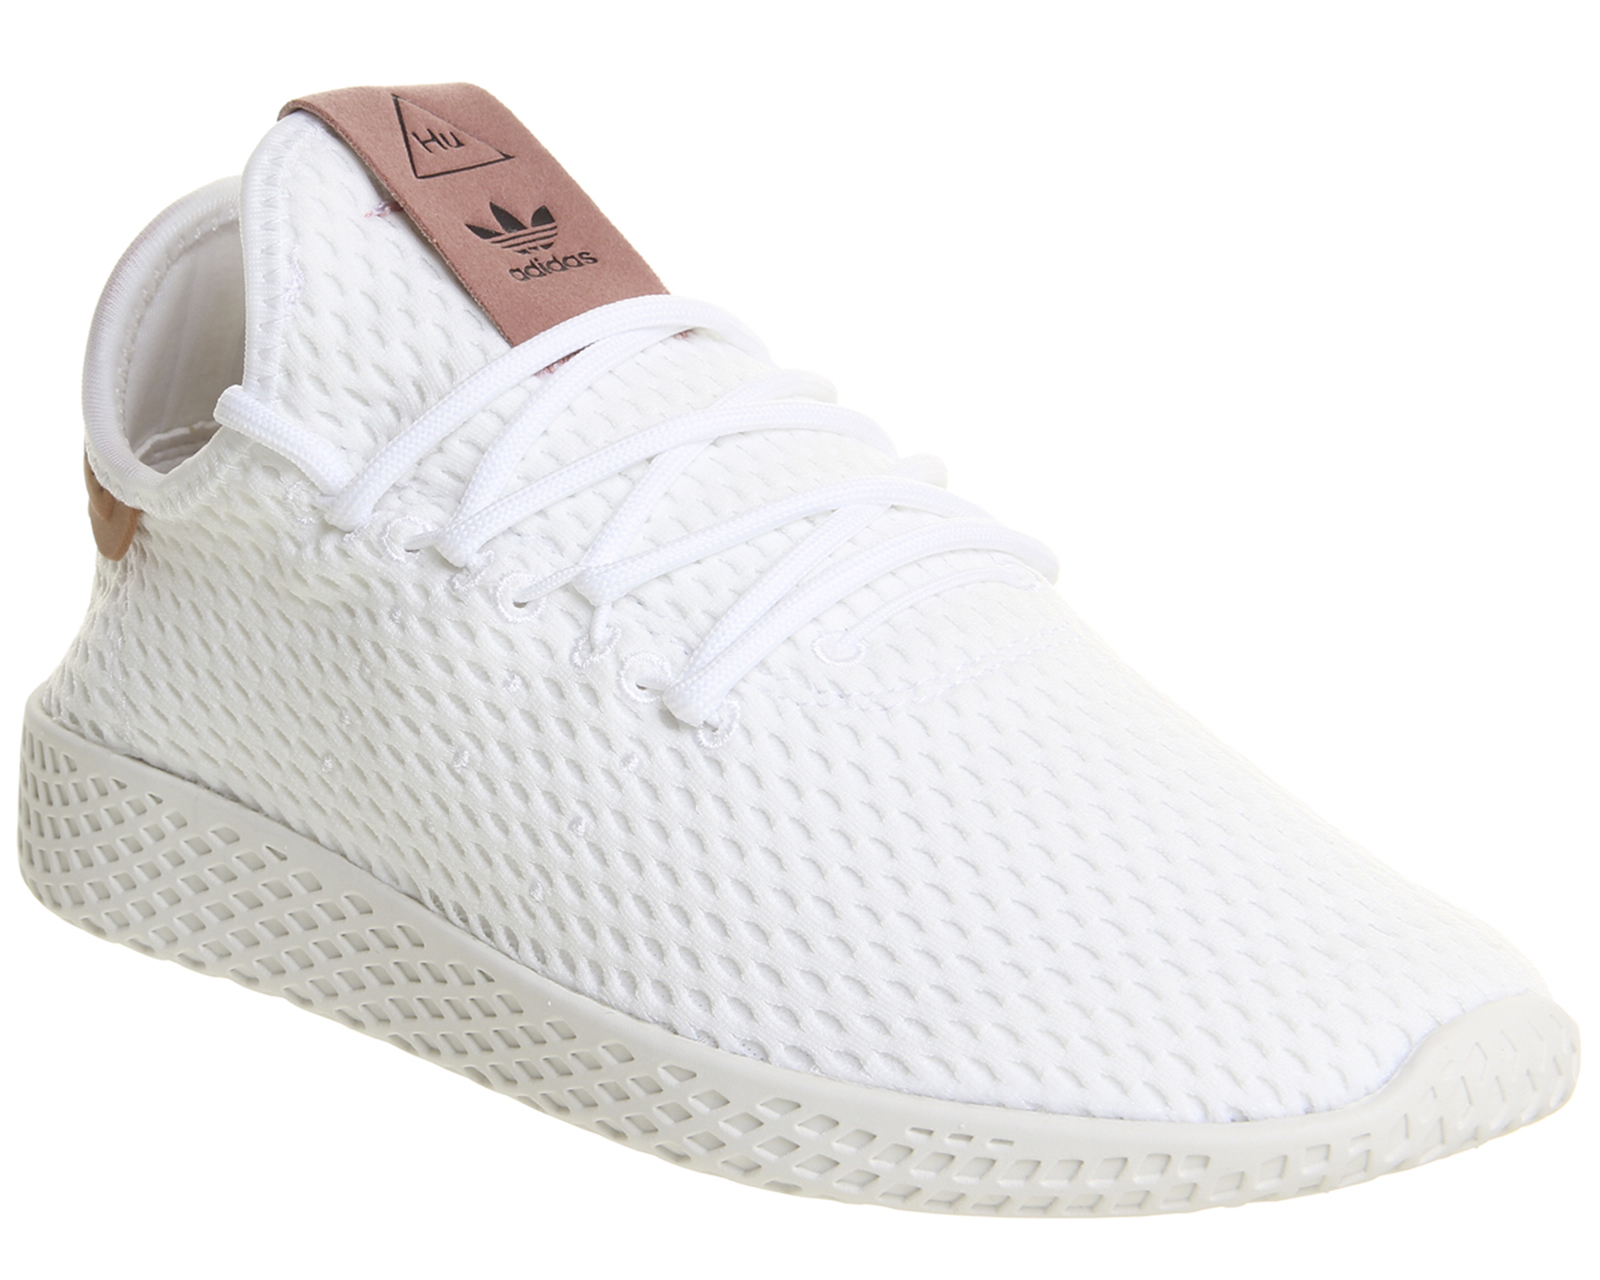 Sentinel Womens Adidas Pw Tennis Hu WHITE RAW PINK Trainers Shoes e0fd803d9